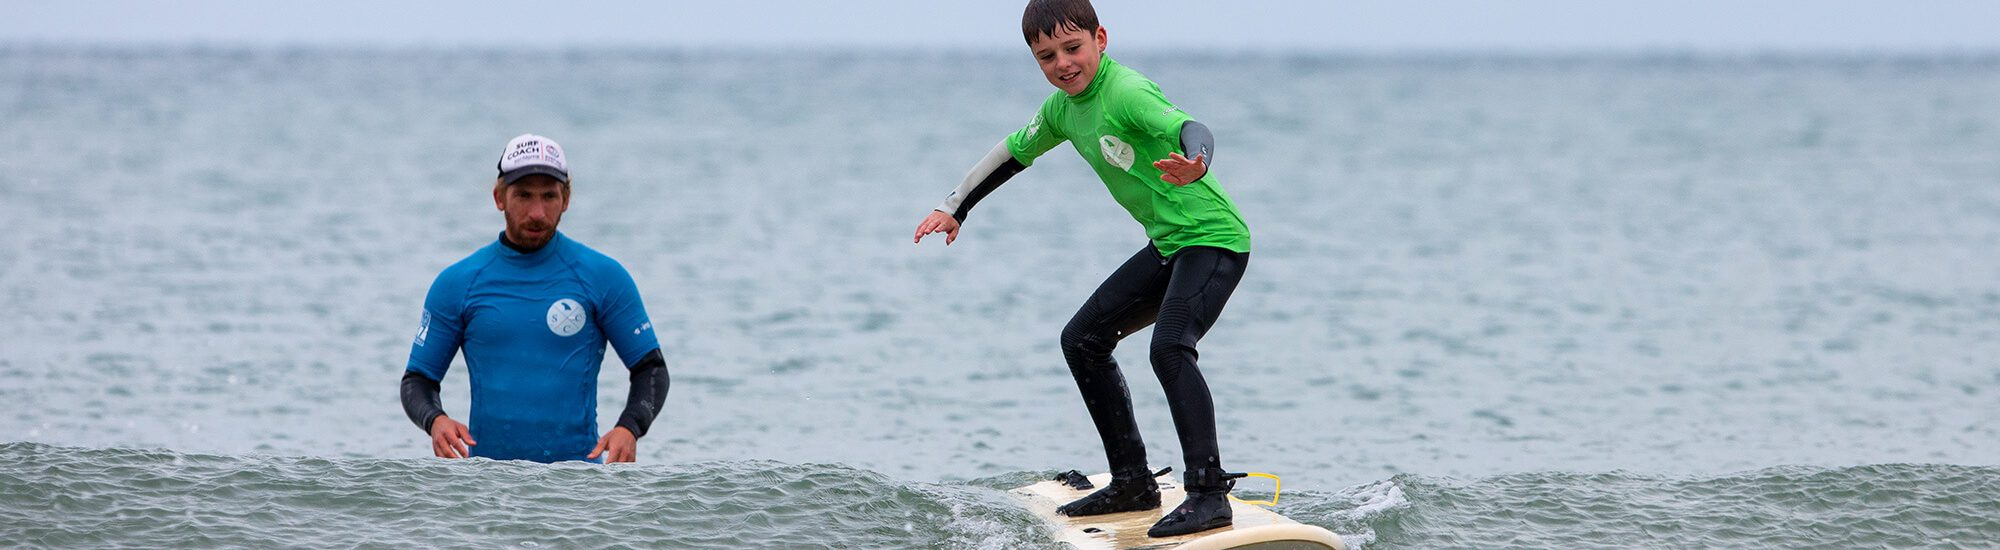 Family Surfing Lesson Cornwall by Andy Holter